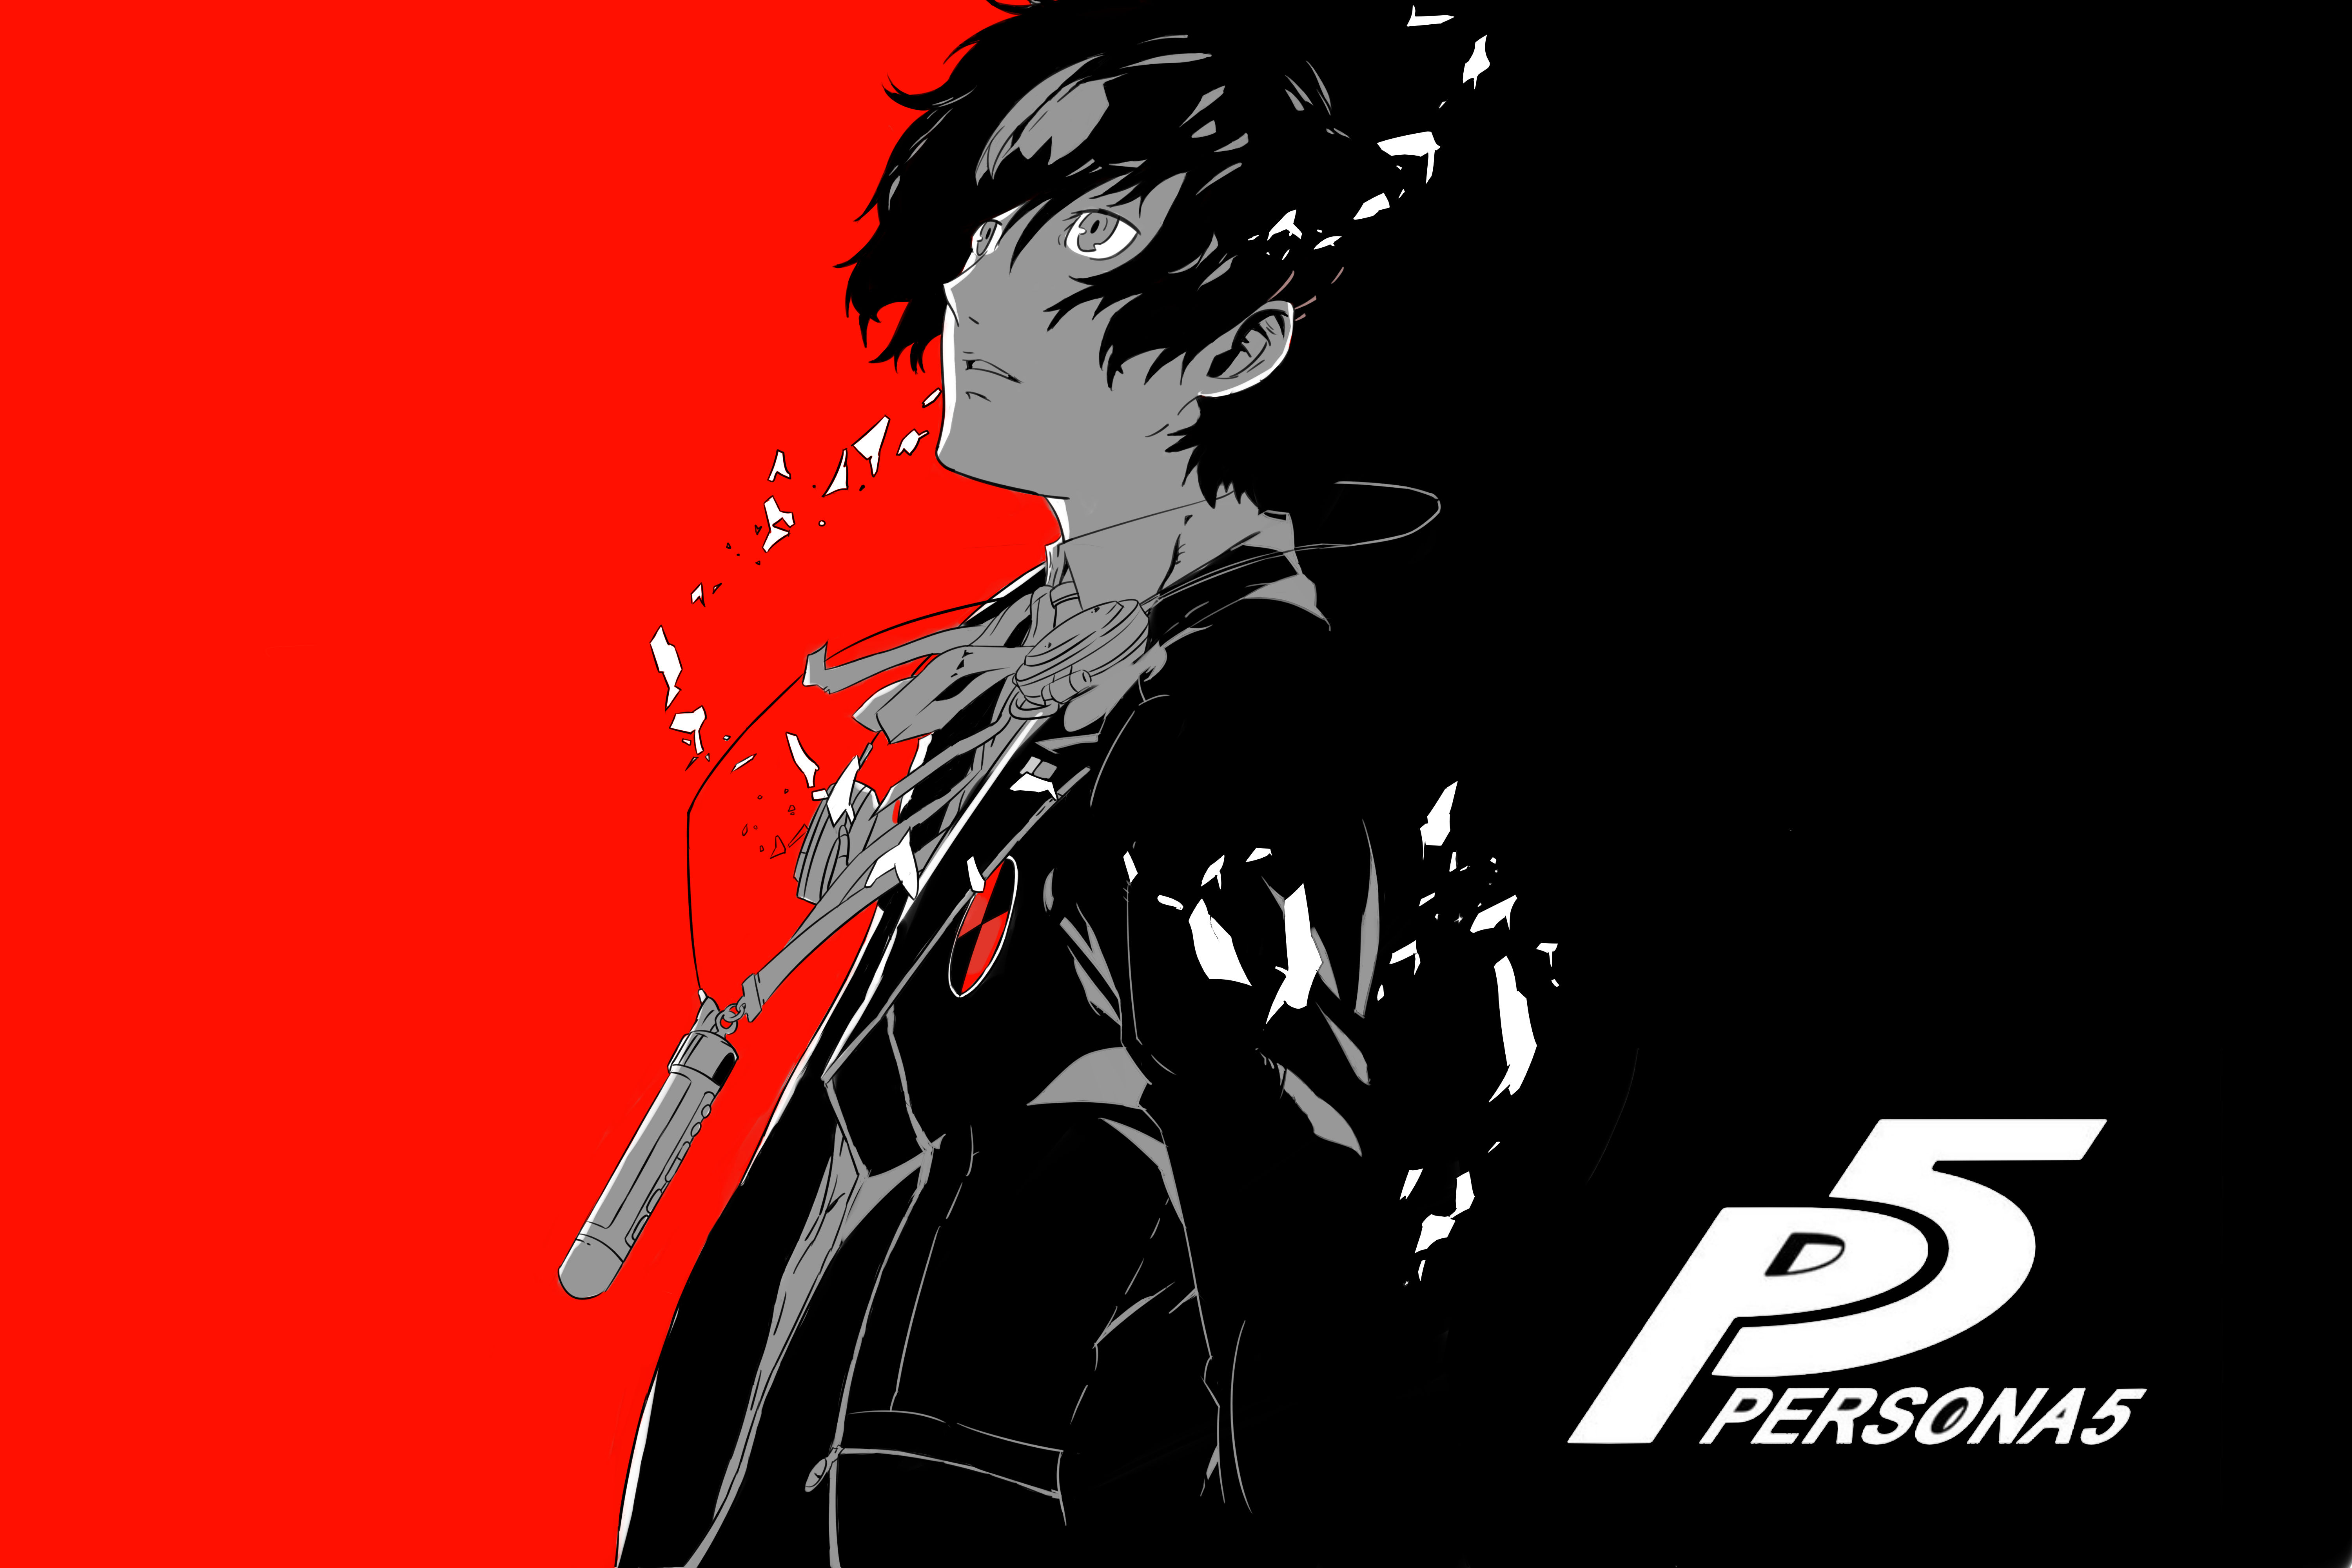 Persona 5 Wallpaper 4k Posted By Christopher Anderson